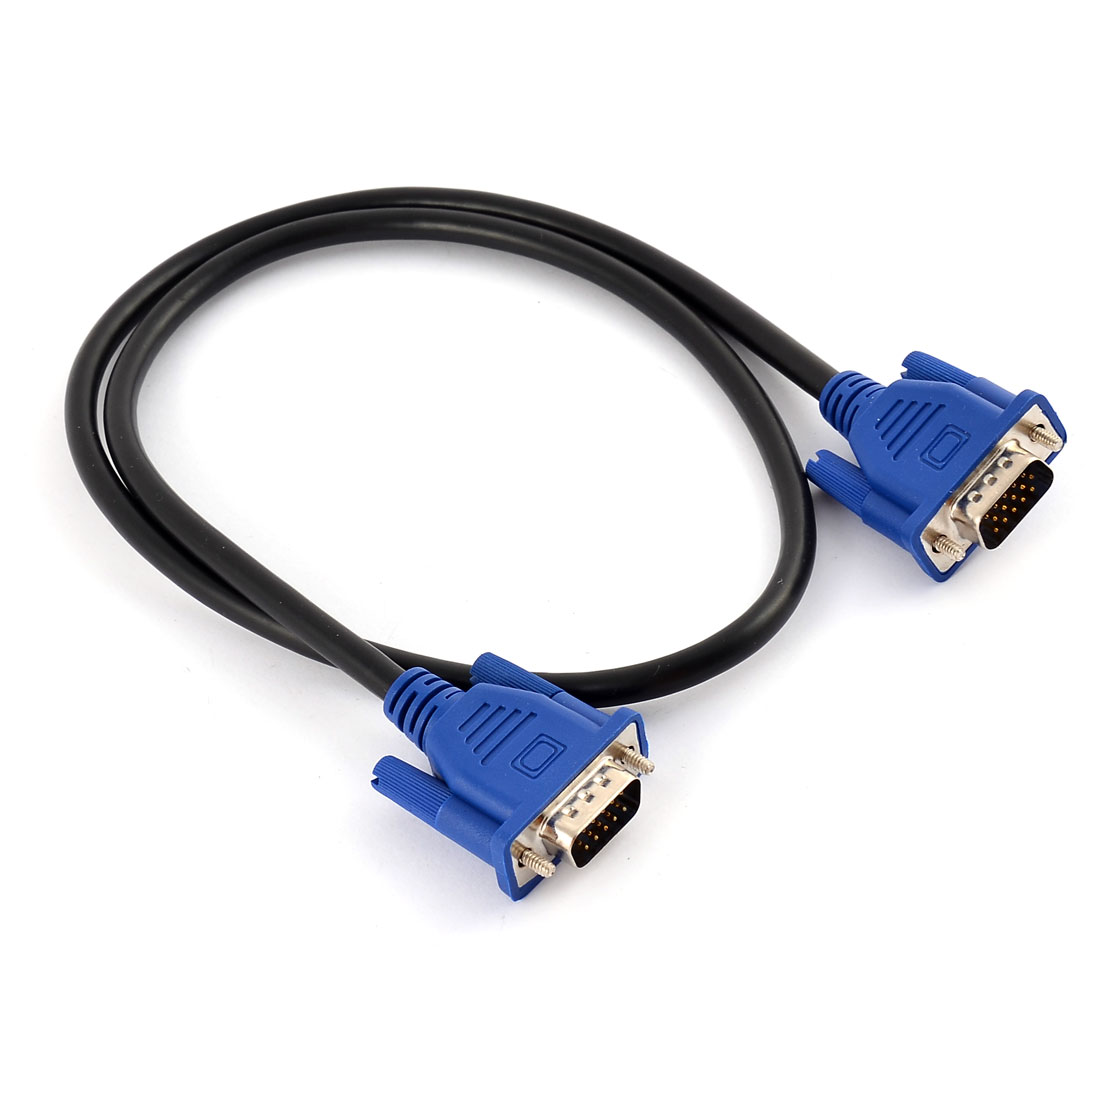 70cm Long Monitor 15 Pin VGA Male to Male M/M Extension Cable Cord Adapter Wire